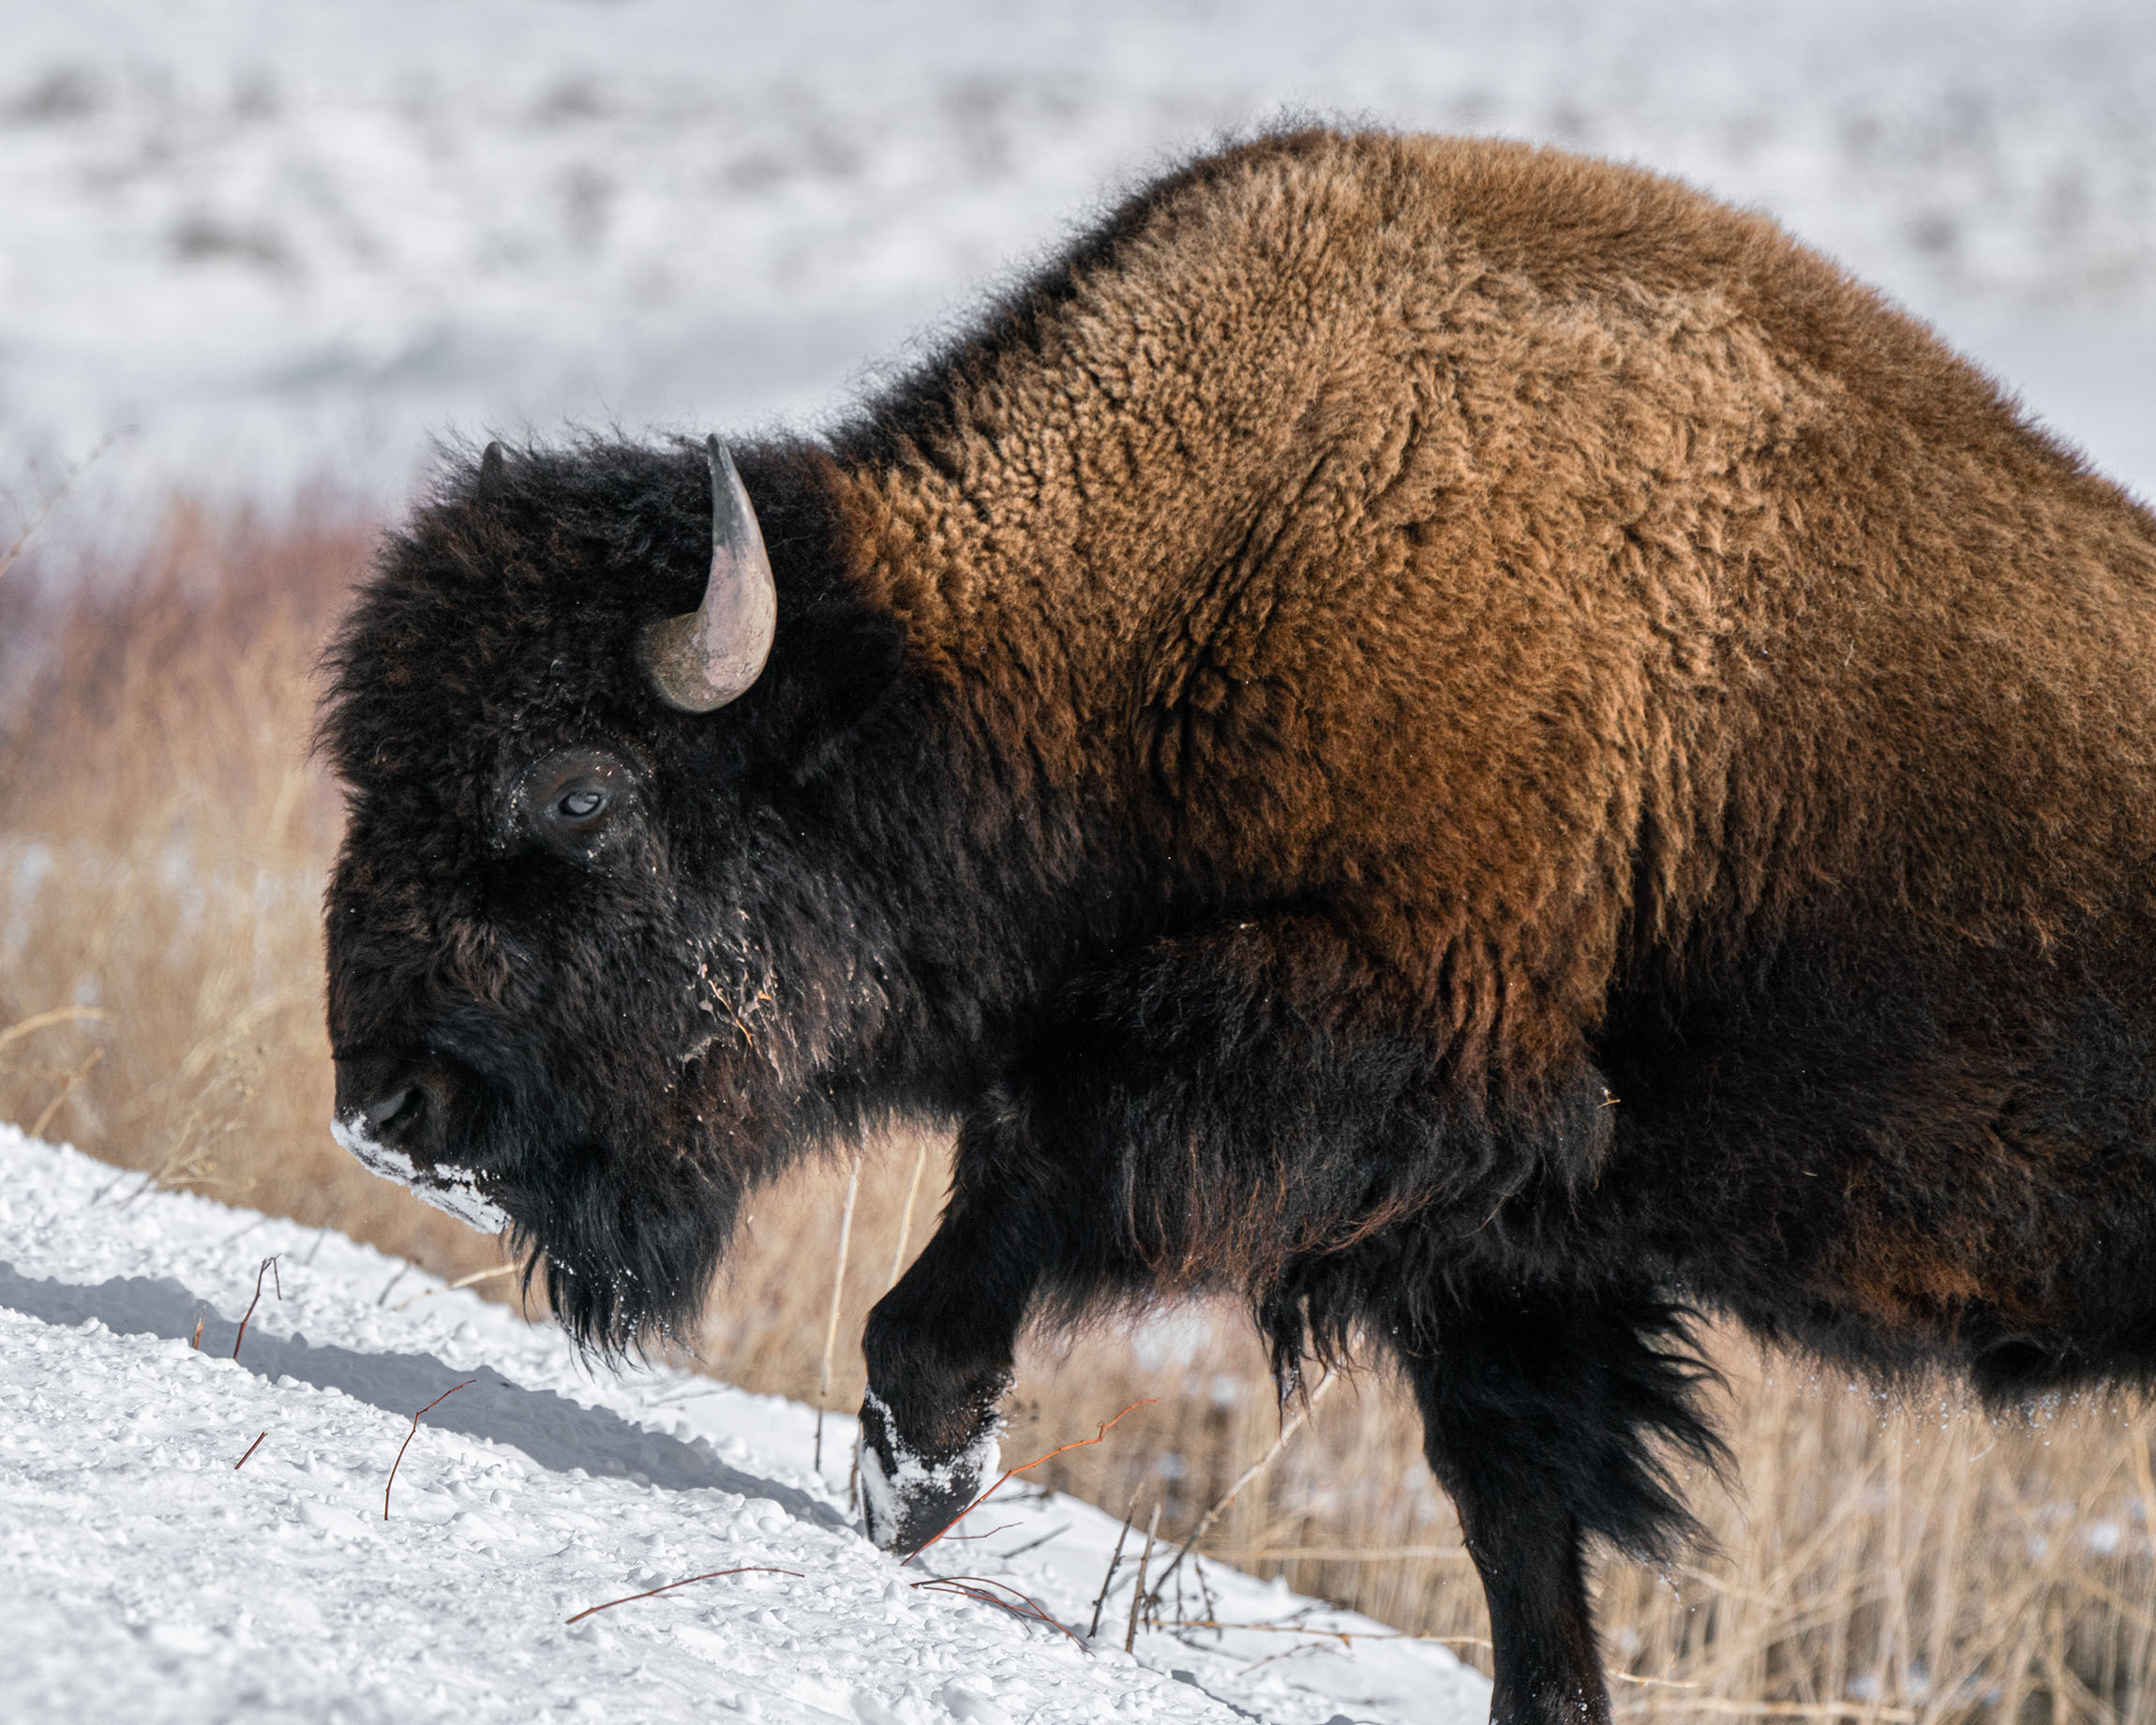 #bison, #buffalo, #wyoming, #grandtetonnationalpark, #wildlife, #wildlifephotography, #action, #nature, #naturephotography, #sony, #outdoorphotography, #wildthingsofwyoming, #kelly, #jacksonhole,